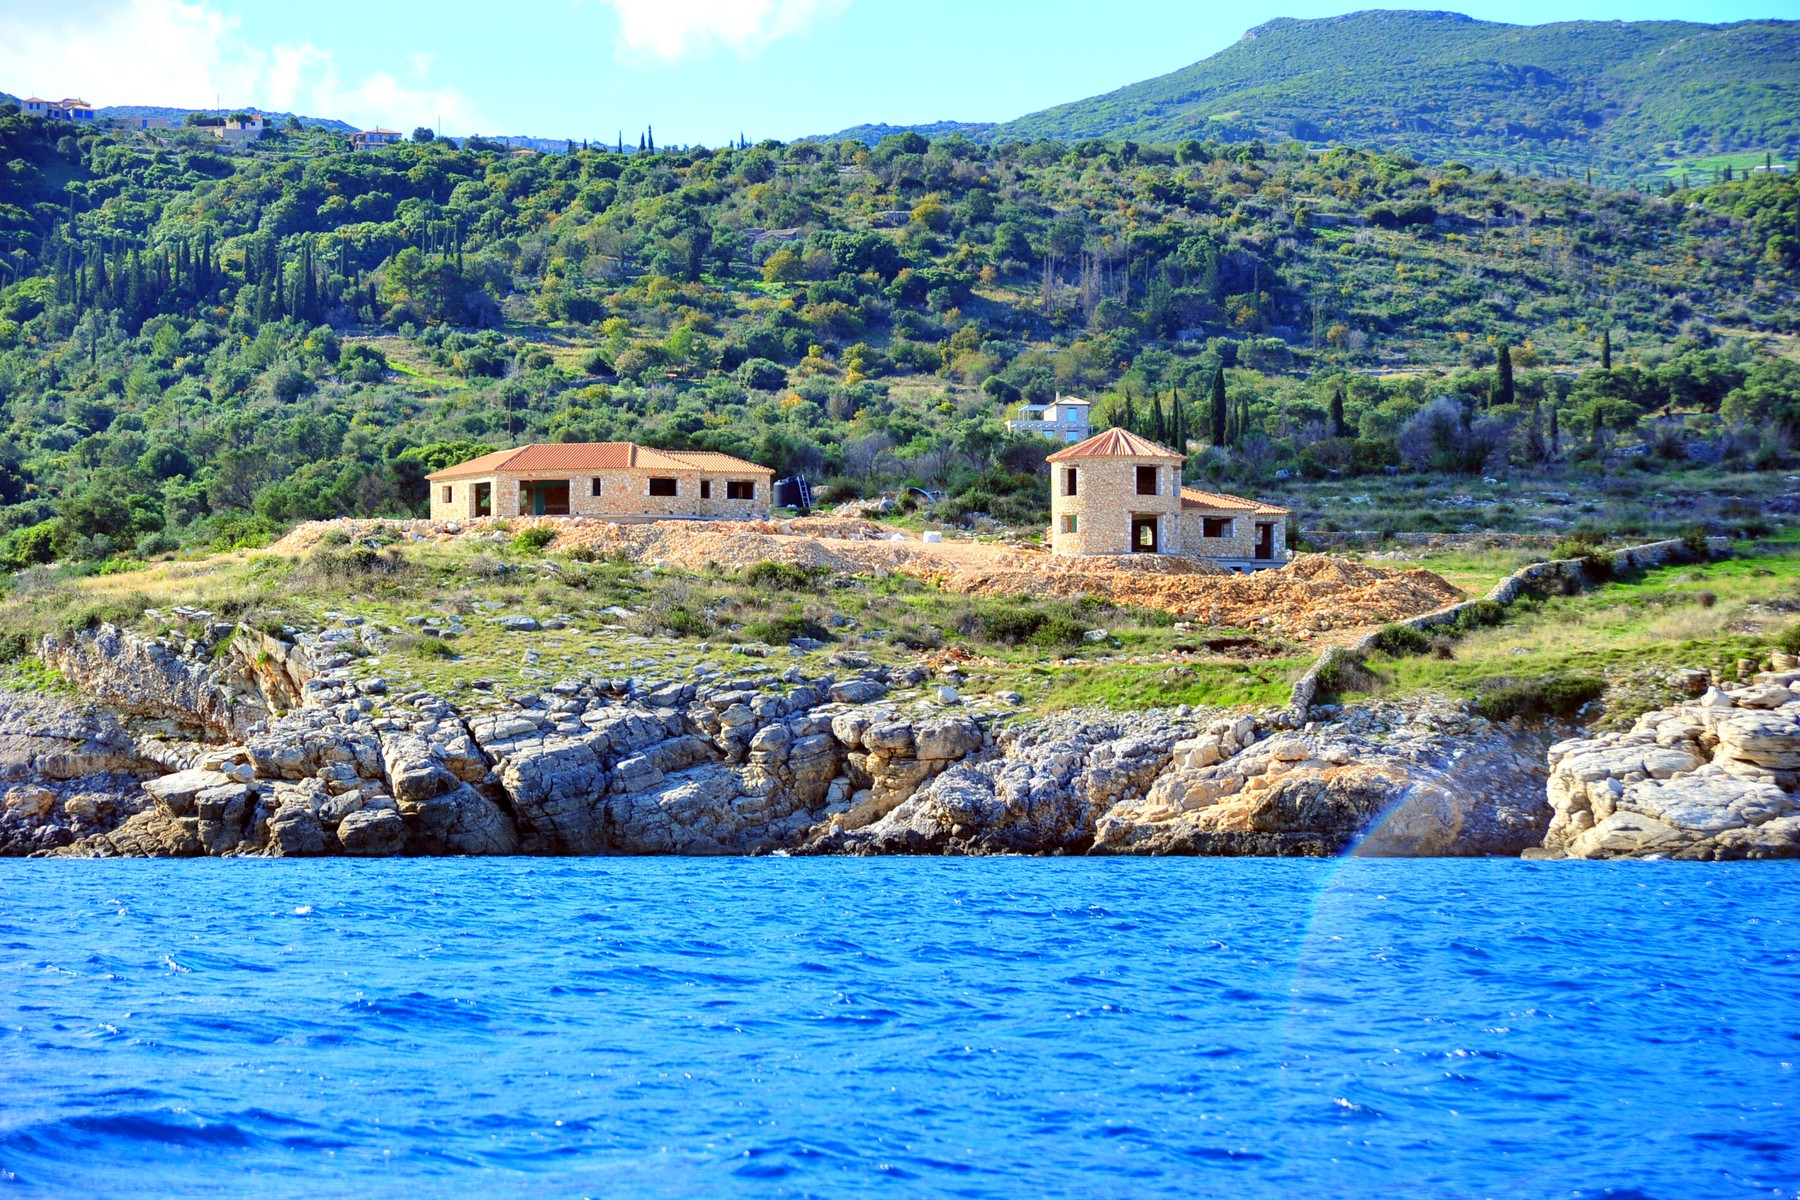 Land for Sale at Sea Front Property in Zakynthos Zakynthos, Ionian Sea Other Greece, Other Areas In Greece, 29100 Greece